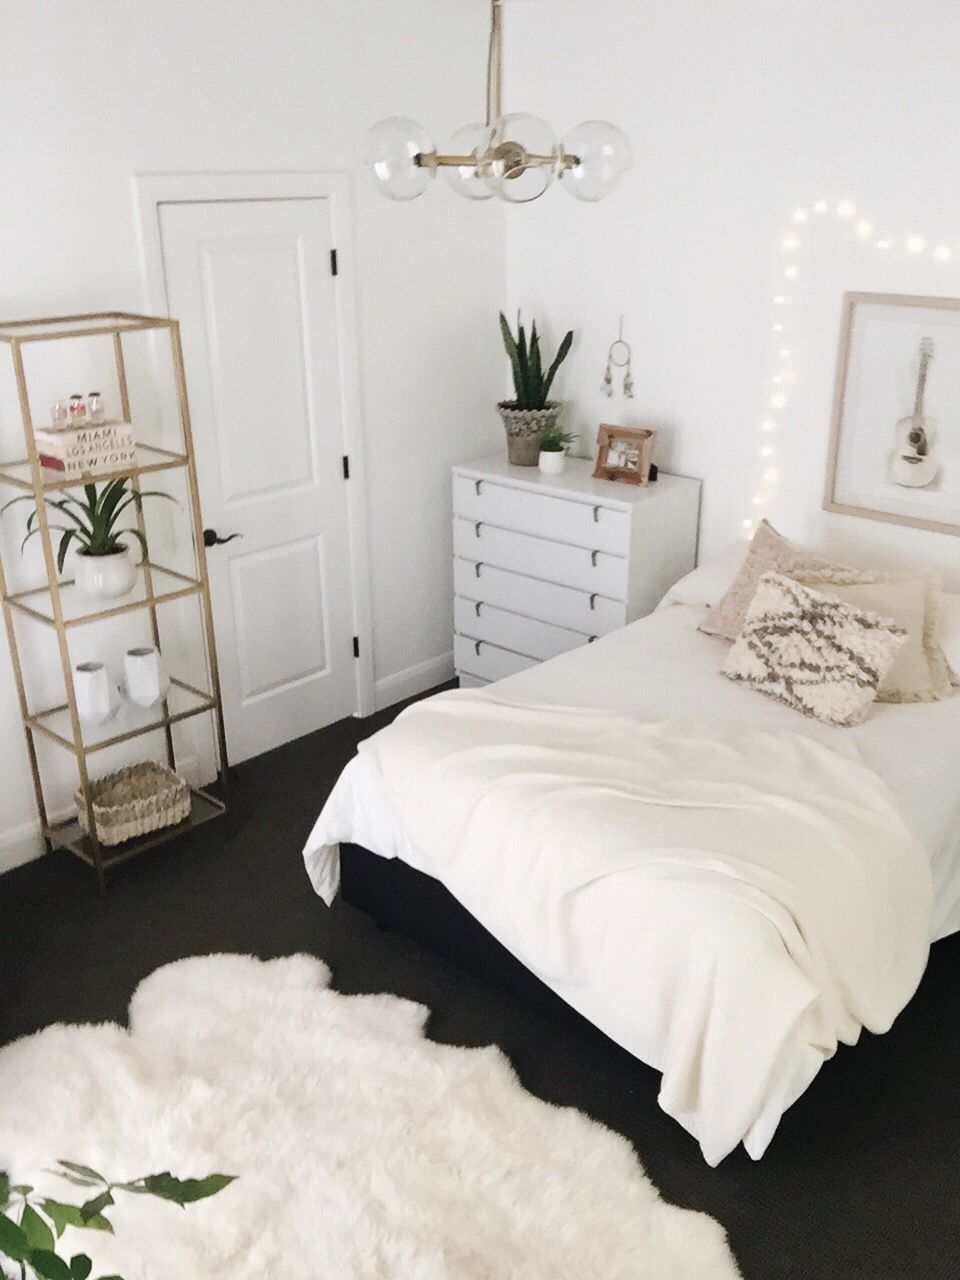 Simple White Bedroom Https Wwwsnowbeddingcom Snow Bedding Offers Silk Pillowcases